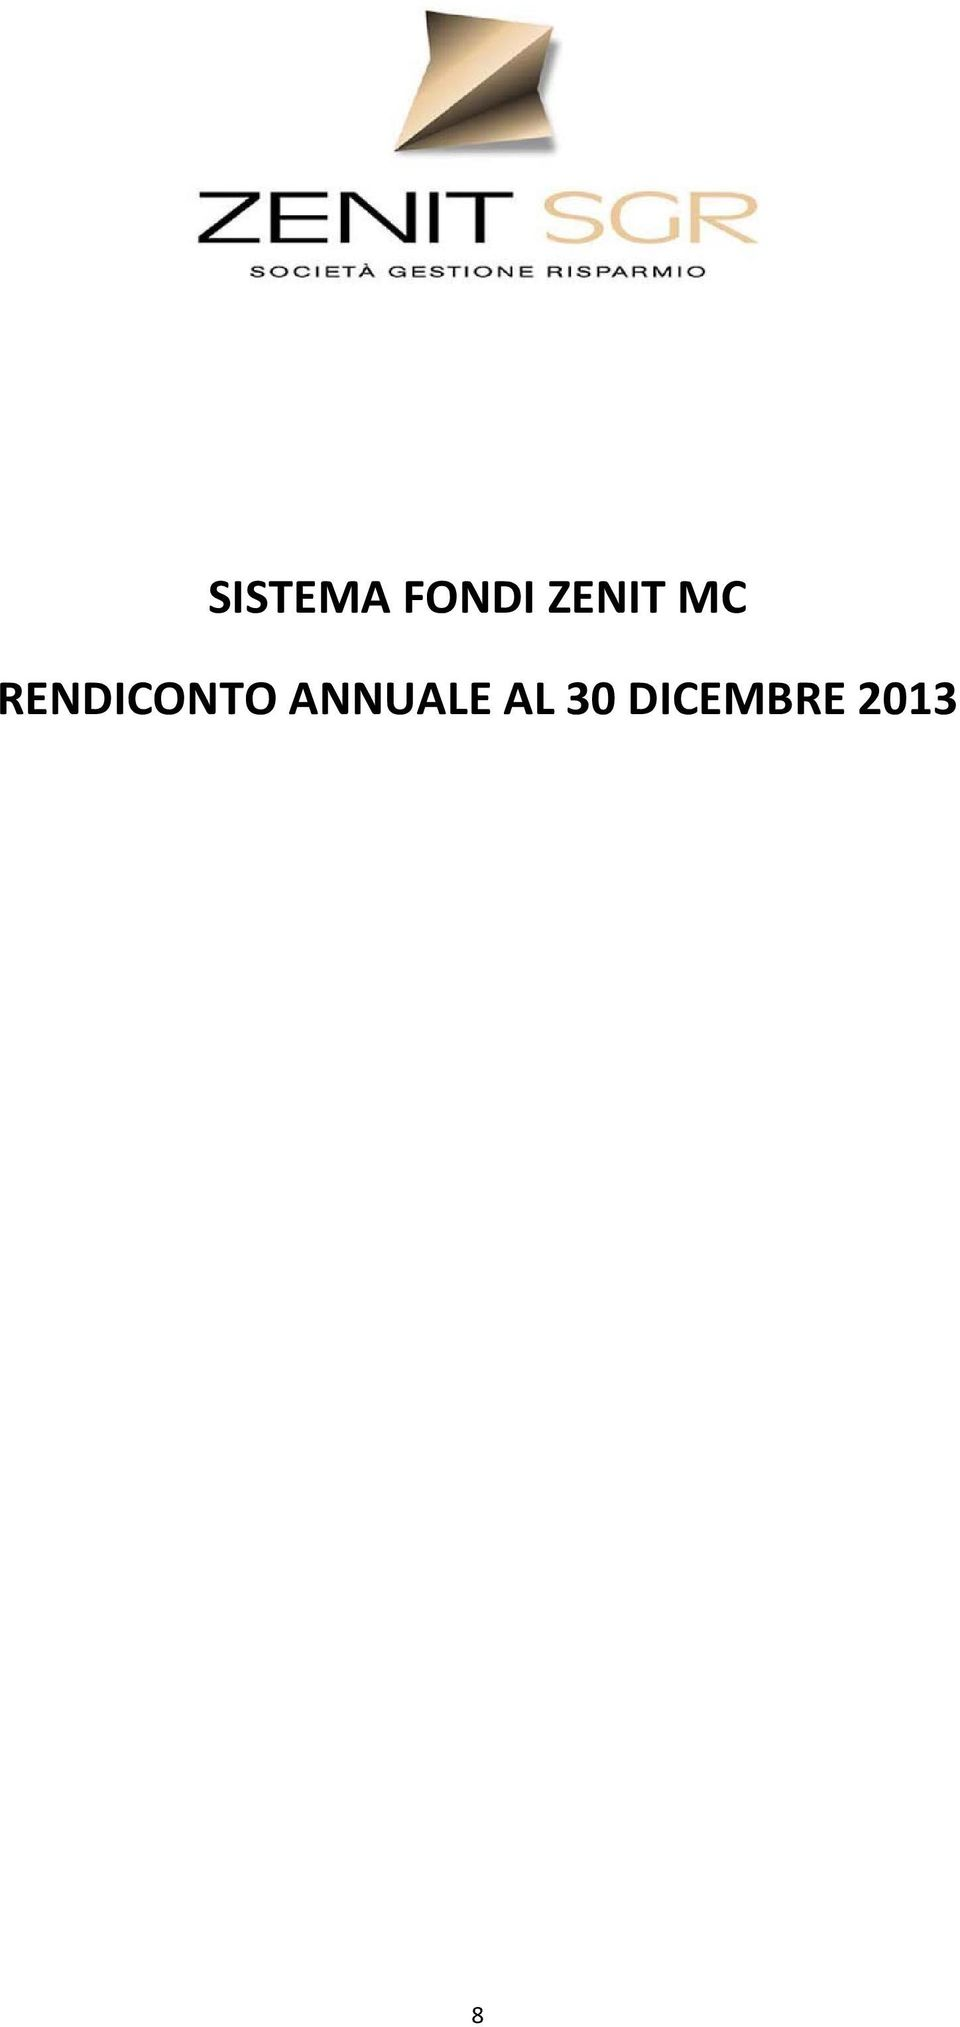 RENDICONTO